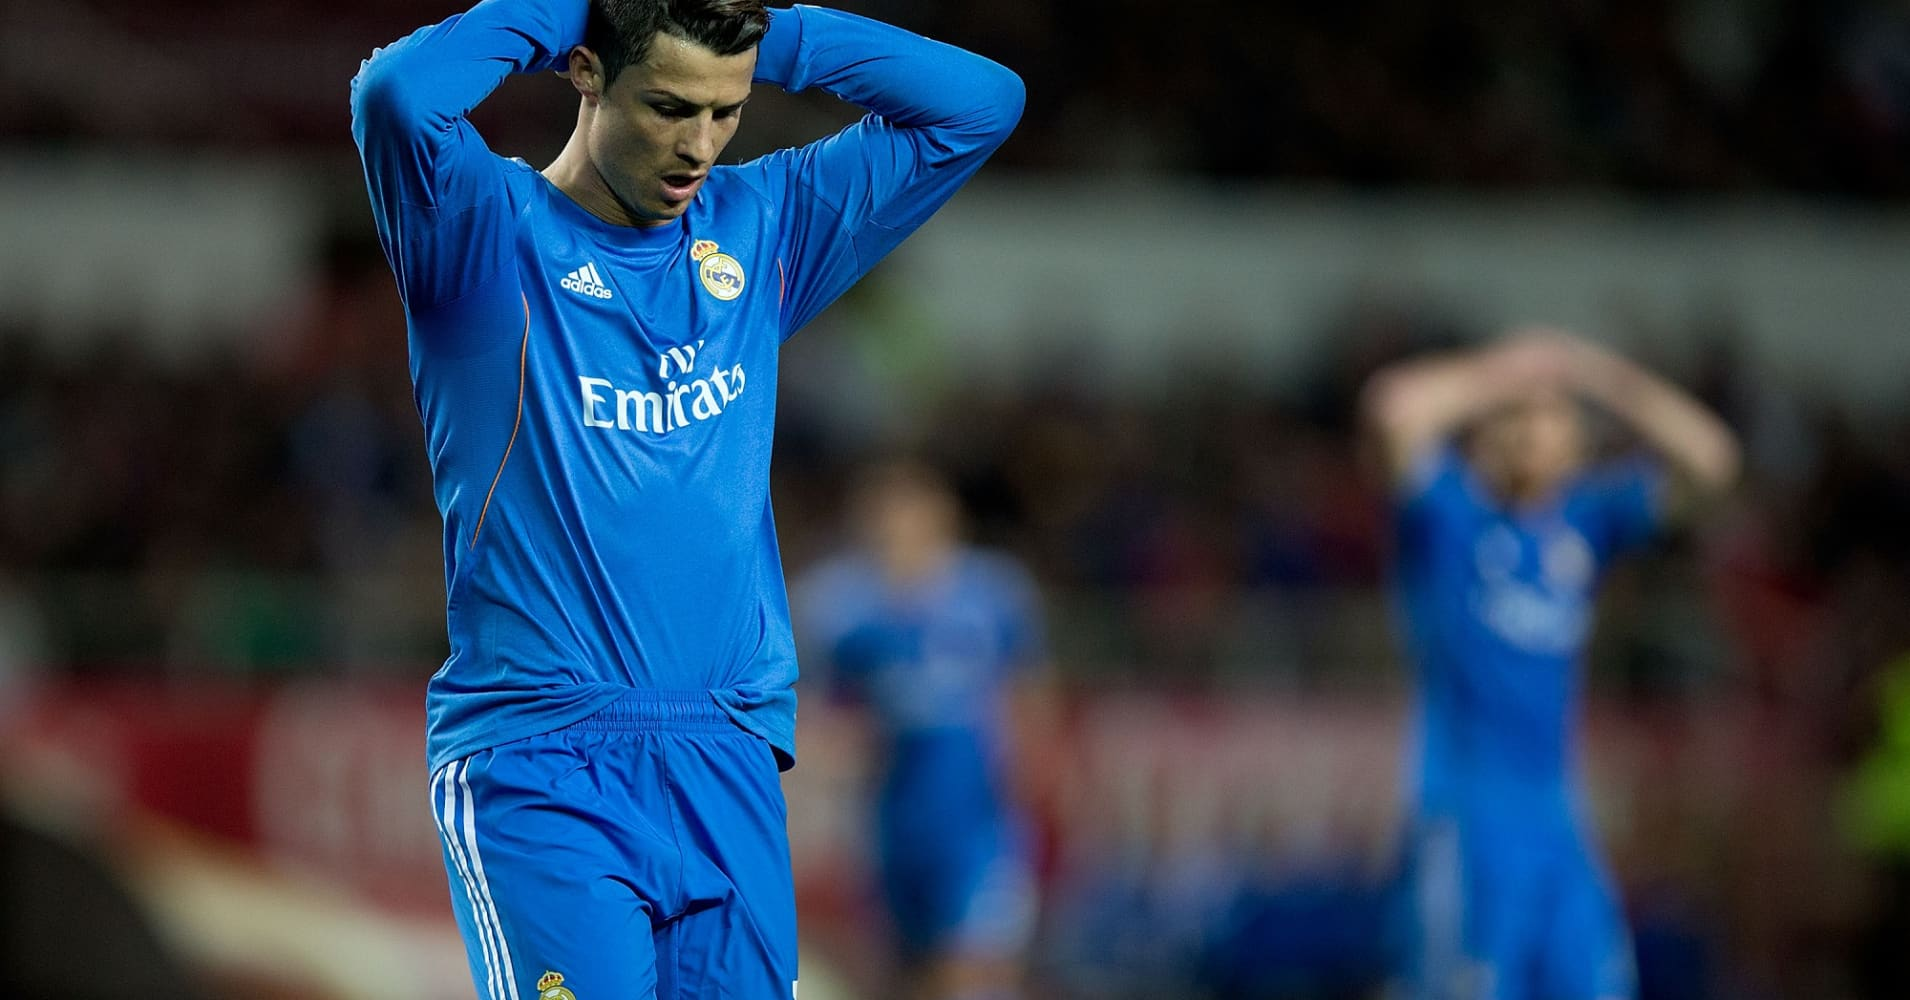 Cristiano Ronaldo of Real Madrid CF reacts as he fail to score during the La Liga match between Sevilla FC and Real Madrid CF at Estadio Ramon Sanchez Pizjuan on March 26, 2014 in Seville, Spain.